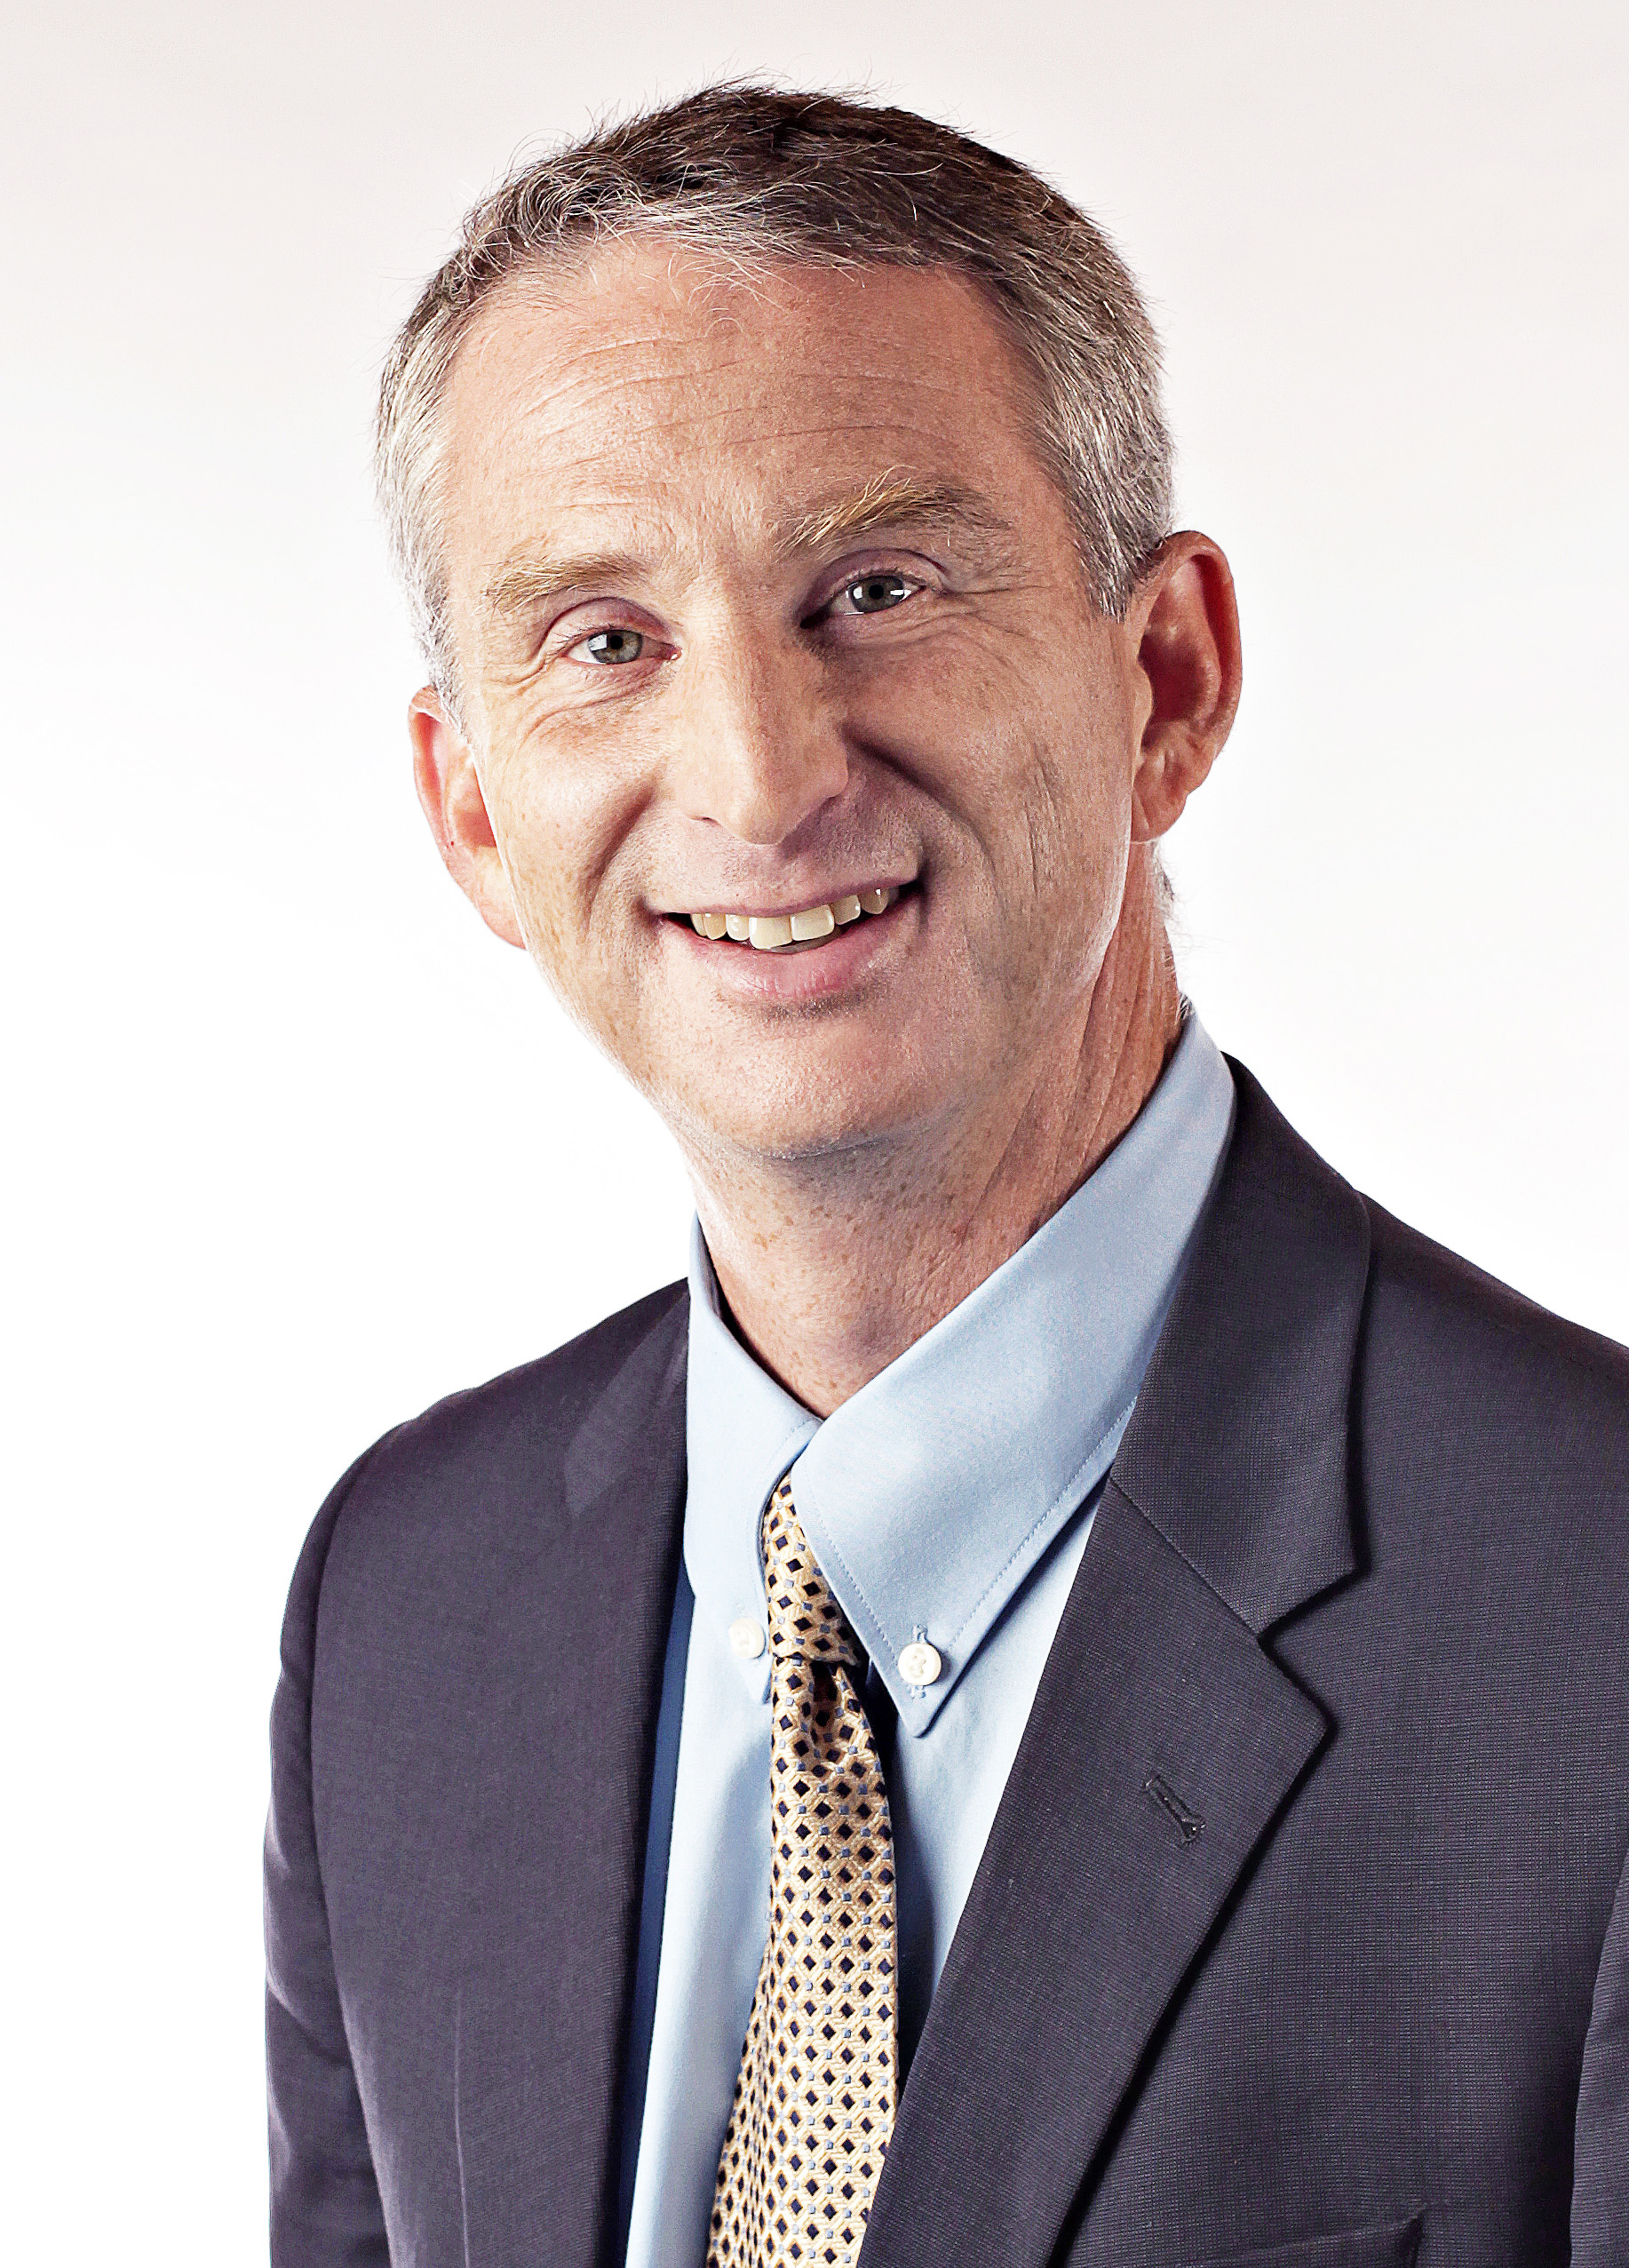 Image Description: In the photo is Cambrian College President Bill Best posing and smiling, he is wearing a dark blue suit and a light blue shirt. The background is completely white.